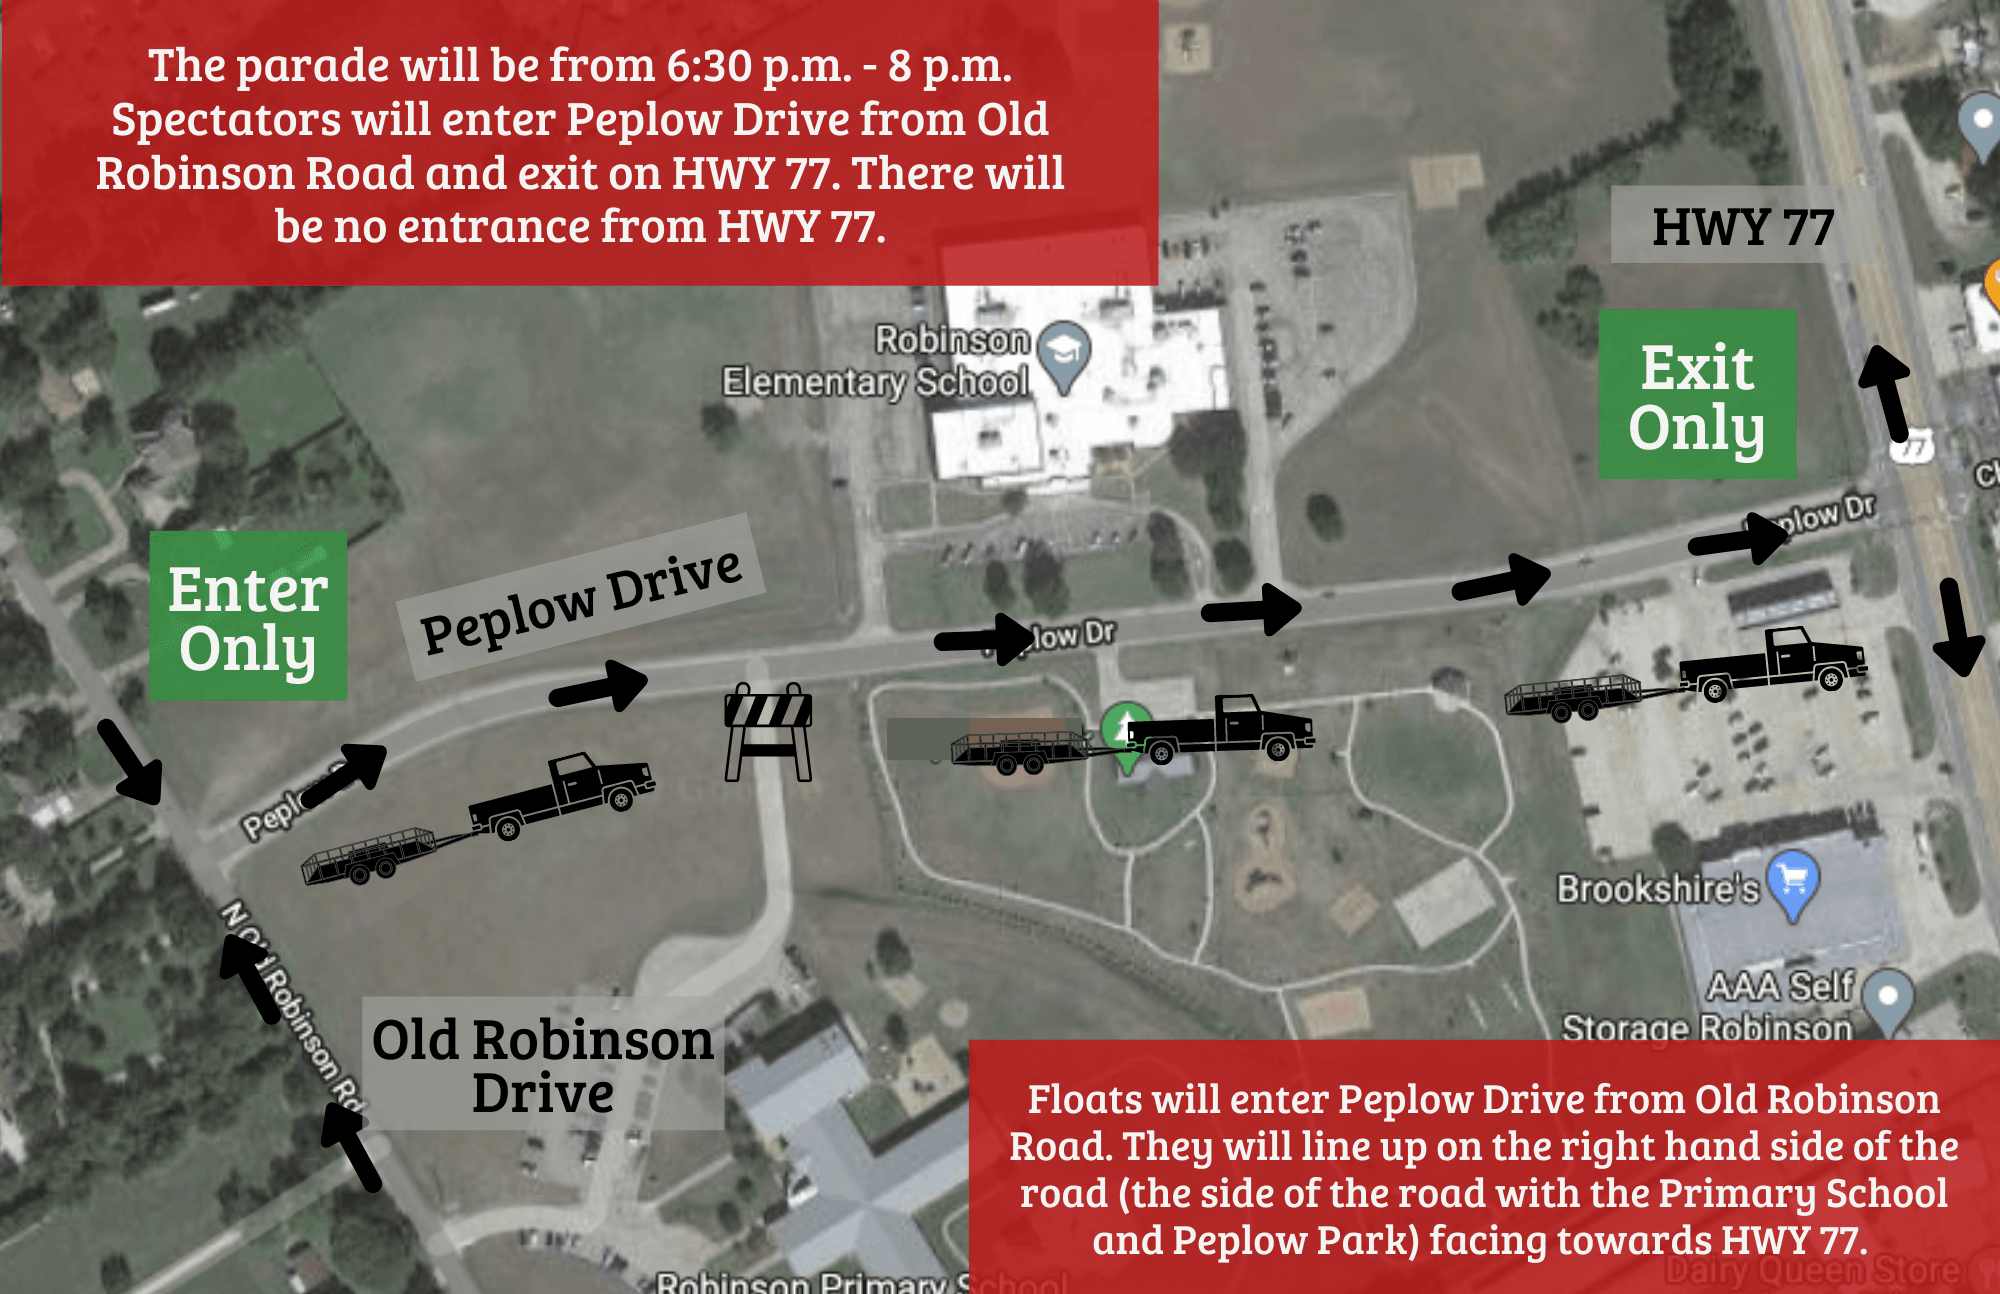 The parade will be from 6:30 p.m. - 8 p.m. Spectators will enter Peplow Drive from Old Robinson Road